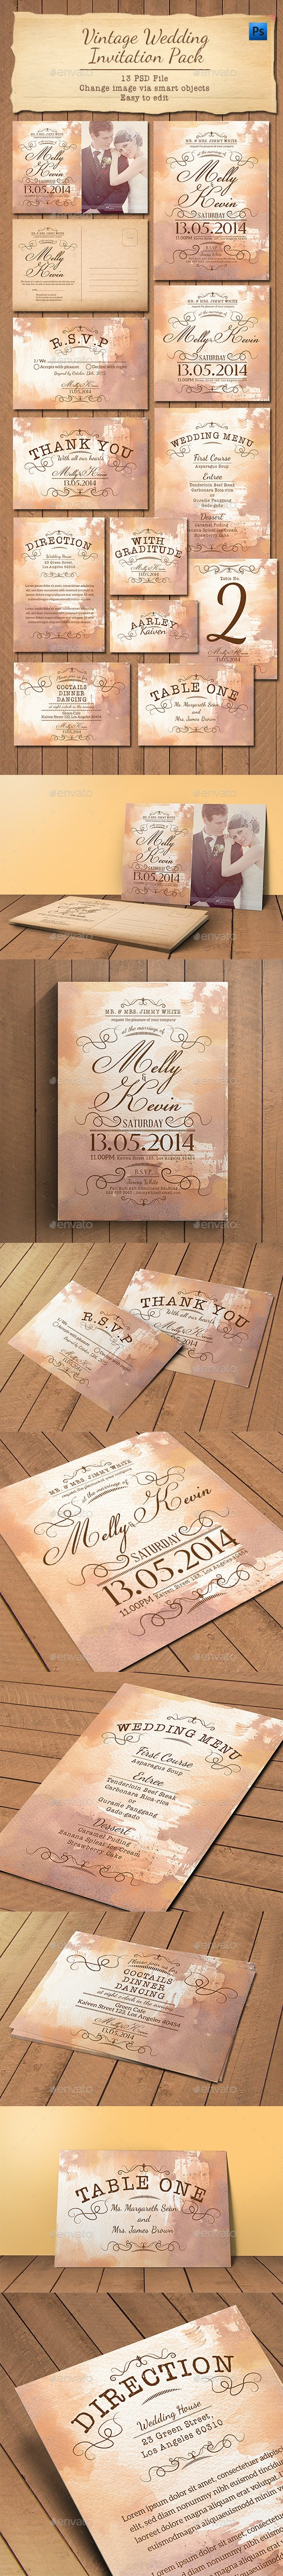 Vintage Wedding Invitation Pack - Weddings Cards & Invites